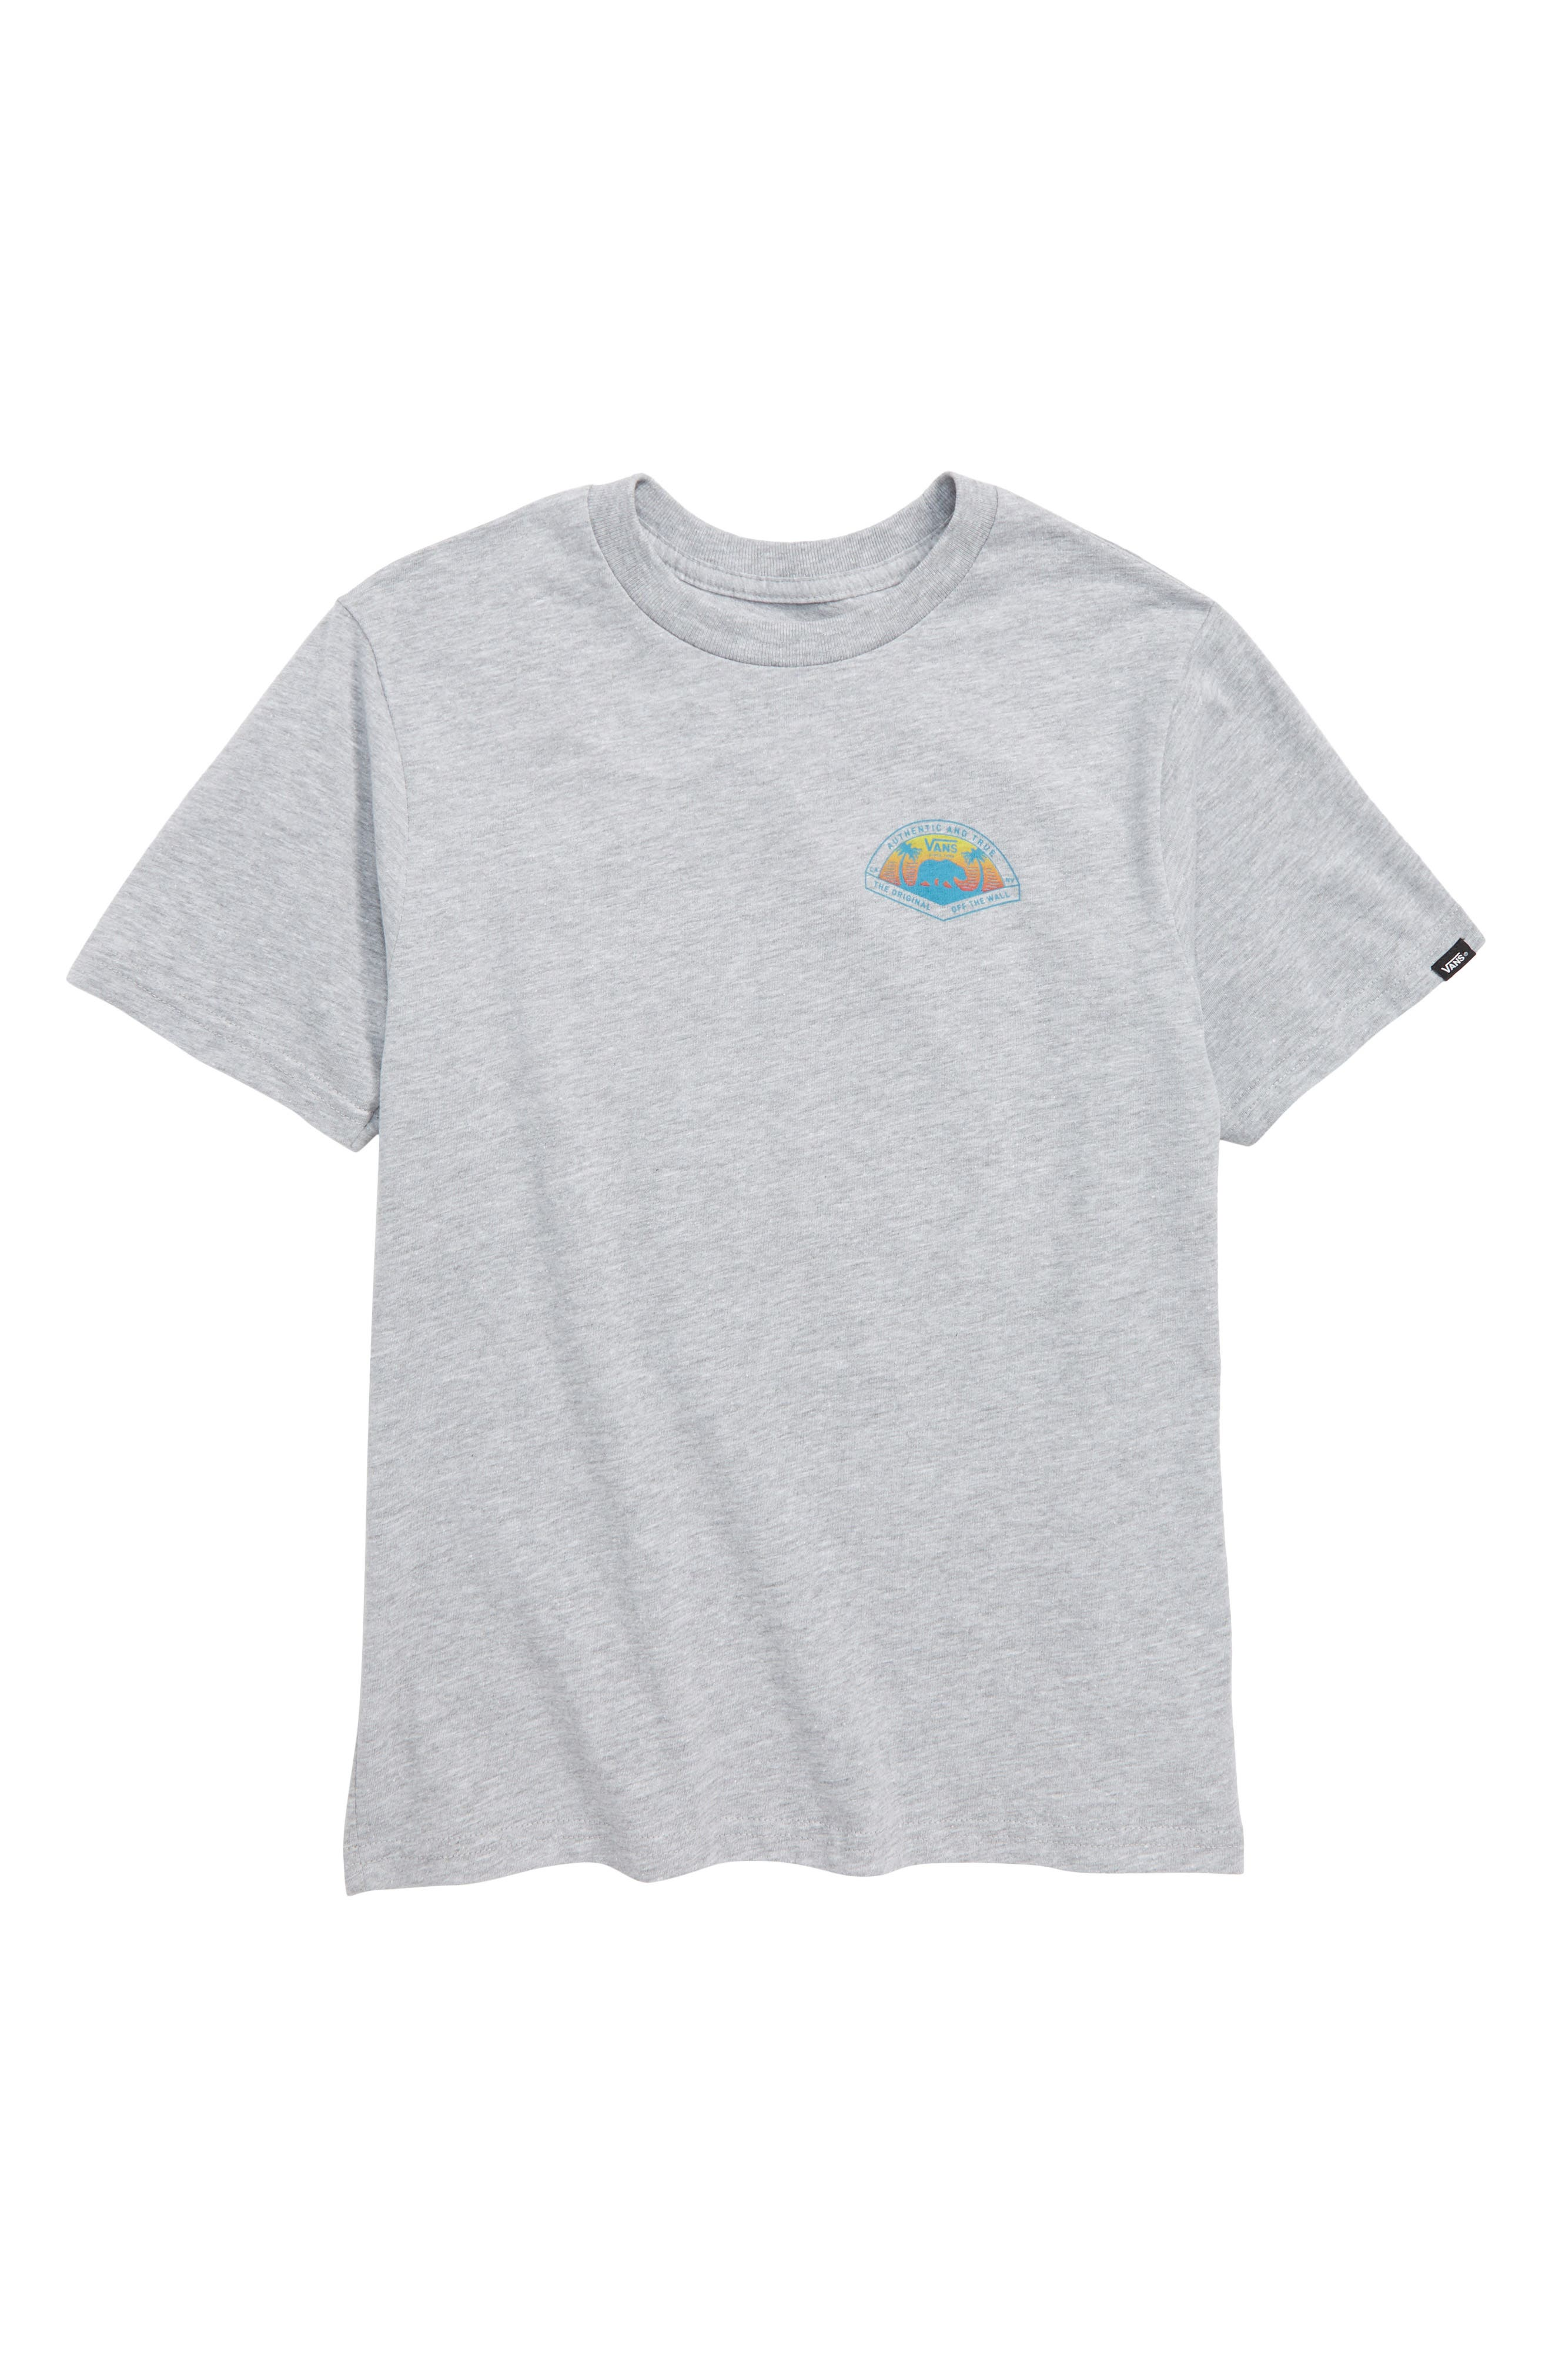 Grizzly Beach Graphic T-Shirt,                             Main thumbnail 1, color,